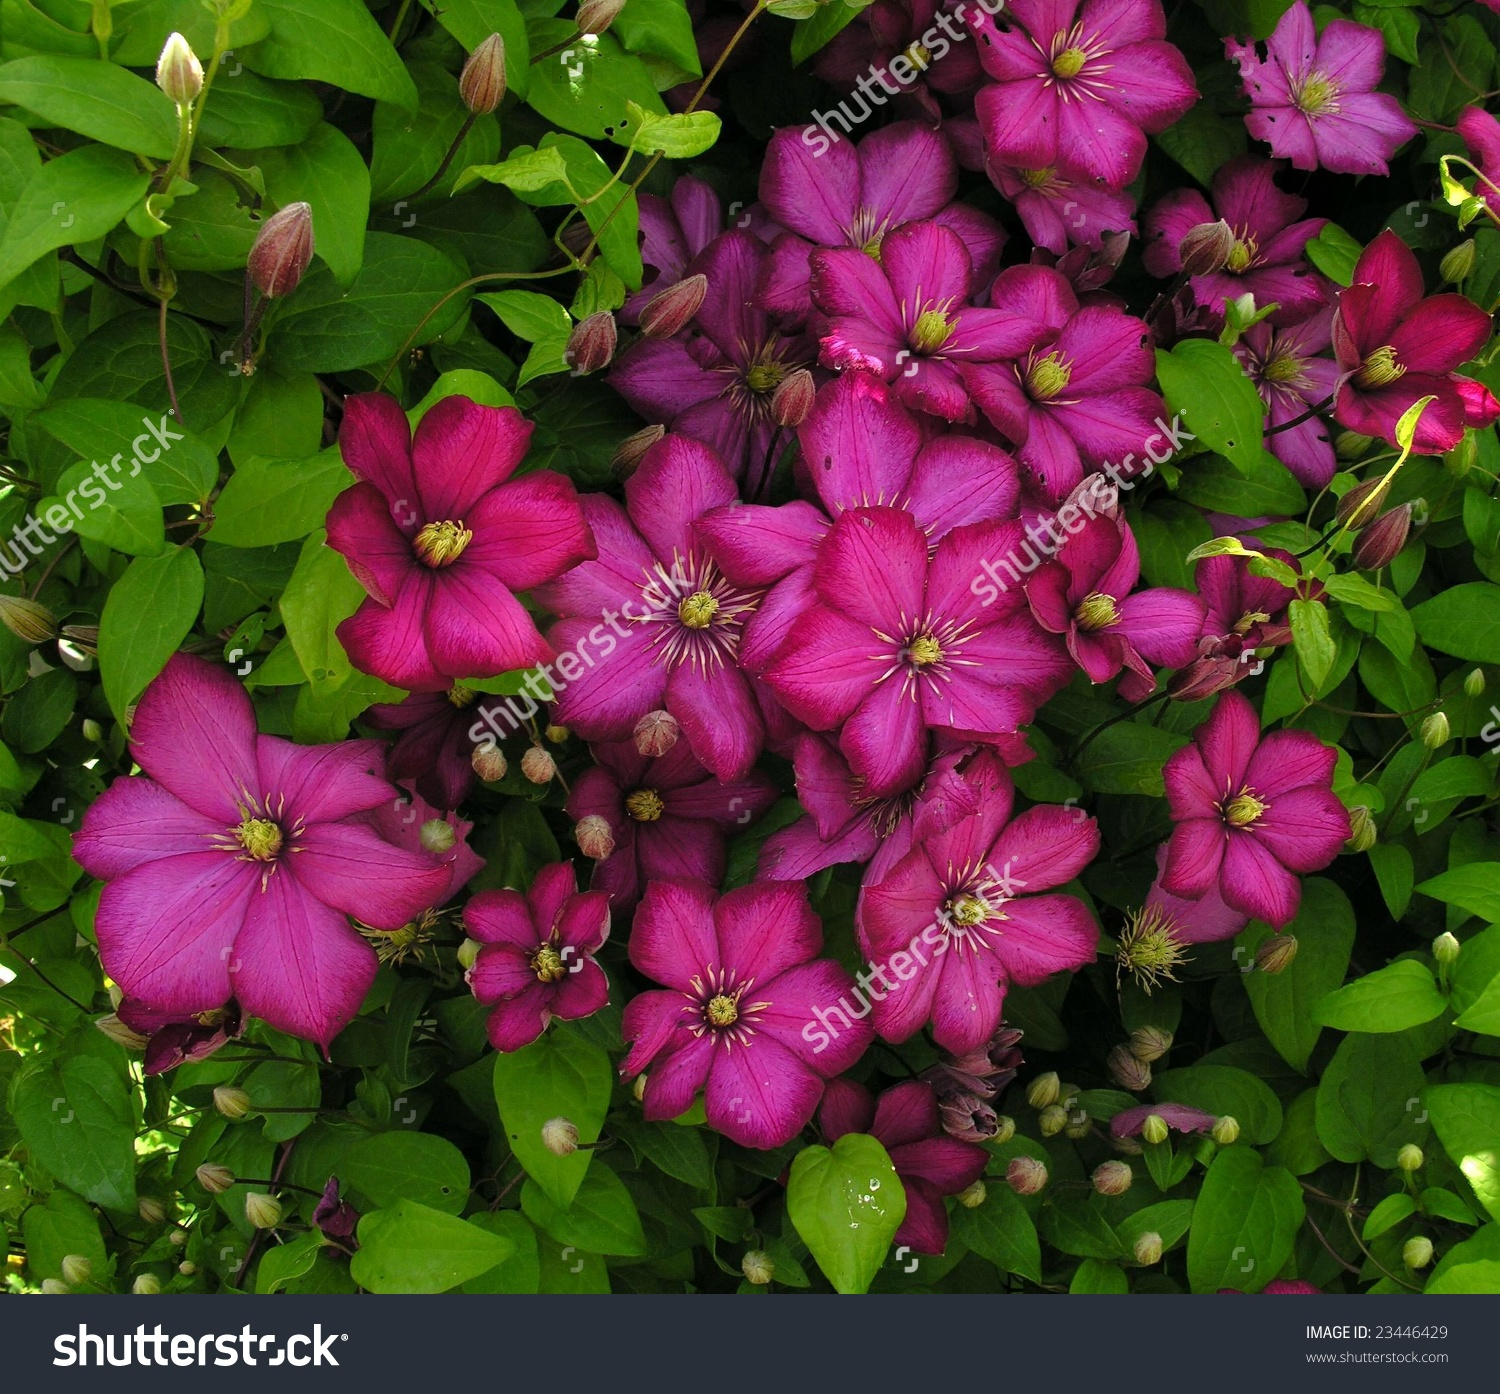 Clematis 'Ville De Lyon' Stock Photo 23446429 : Shutterstock.